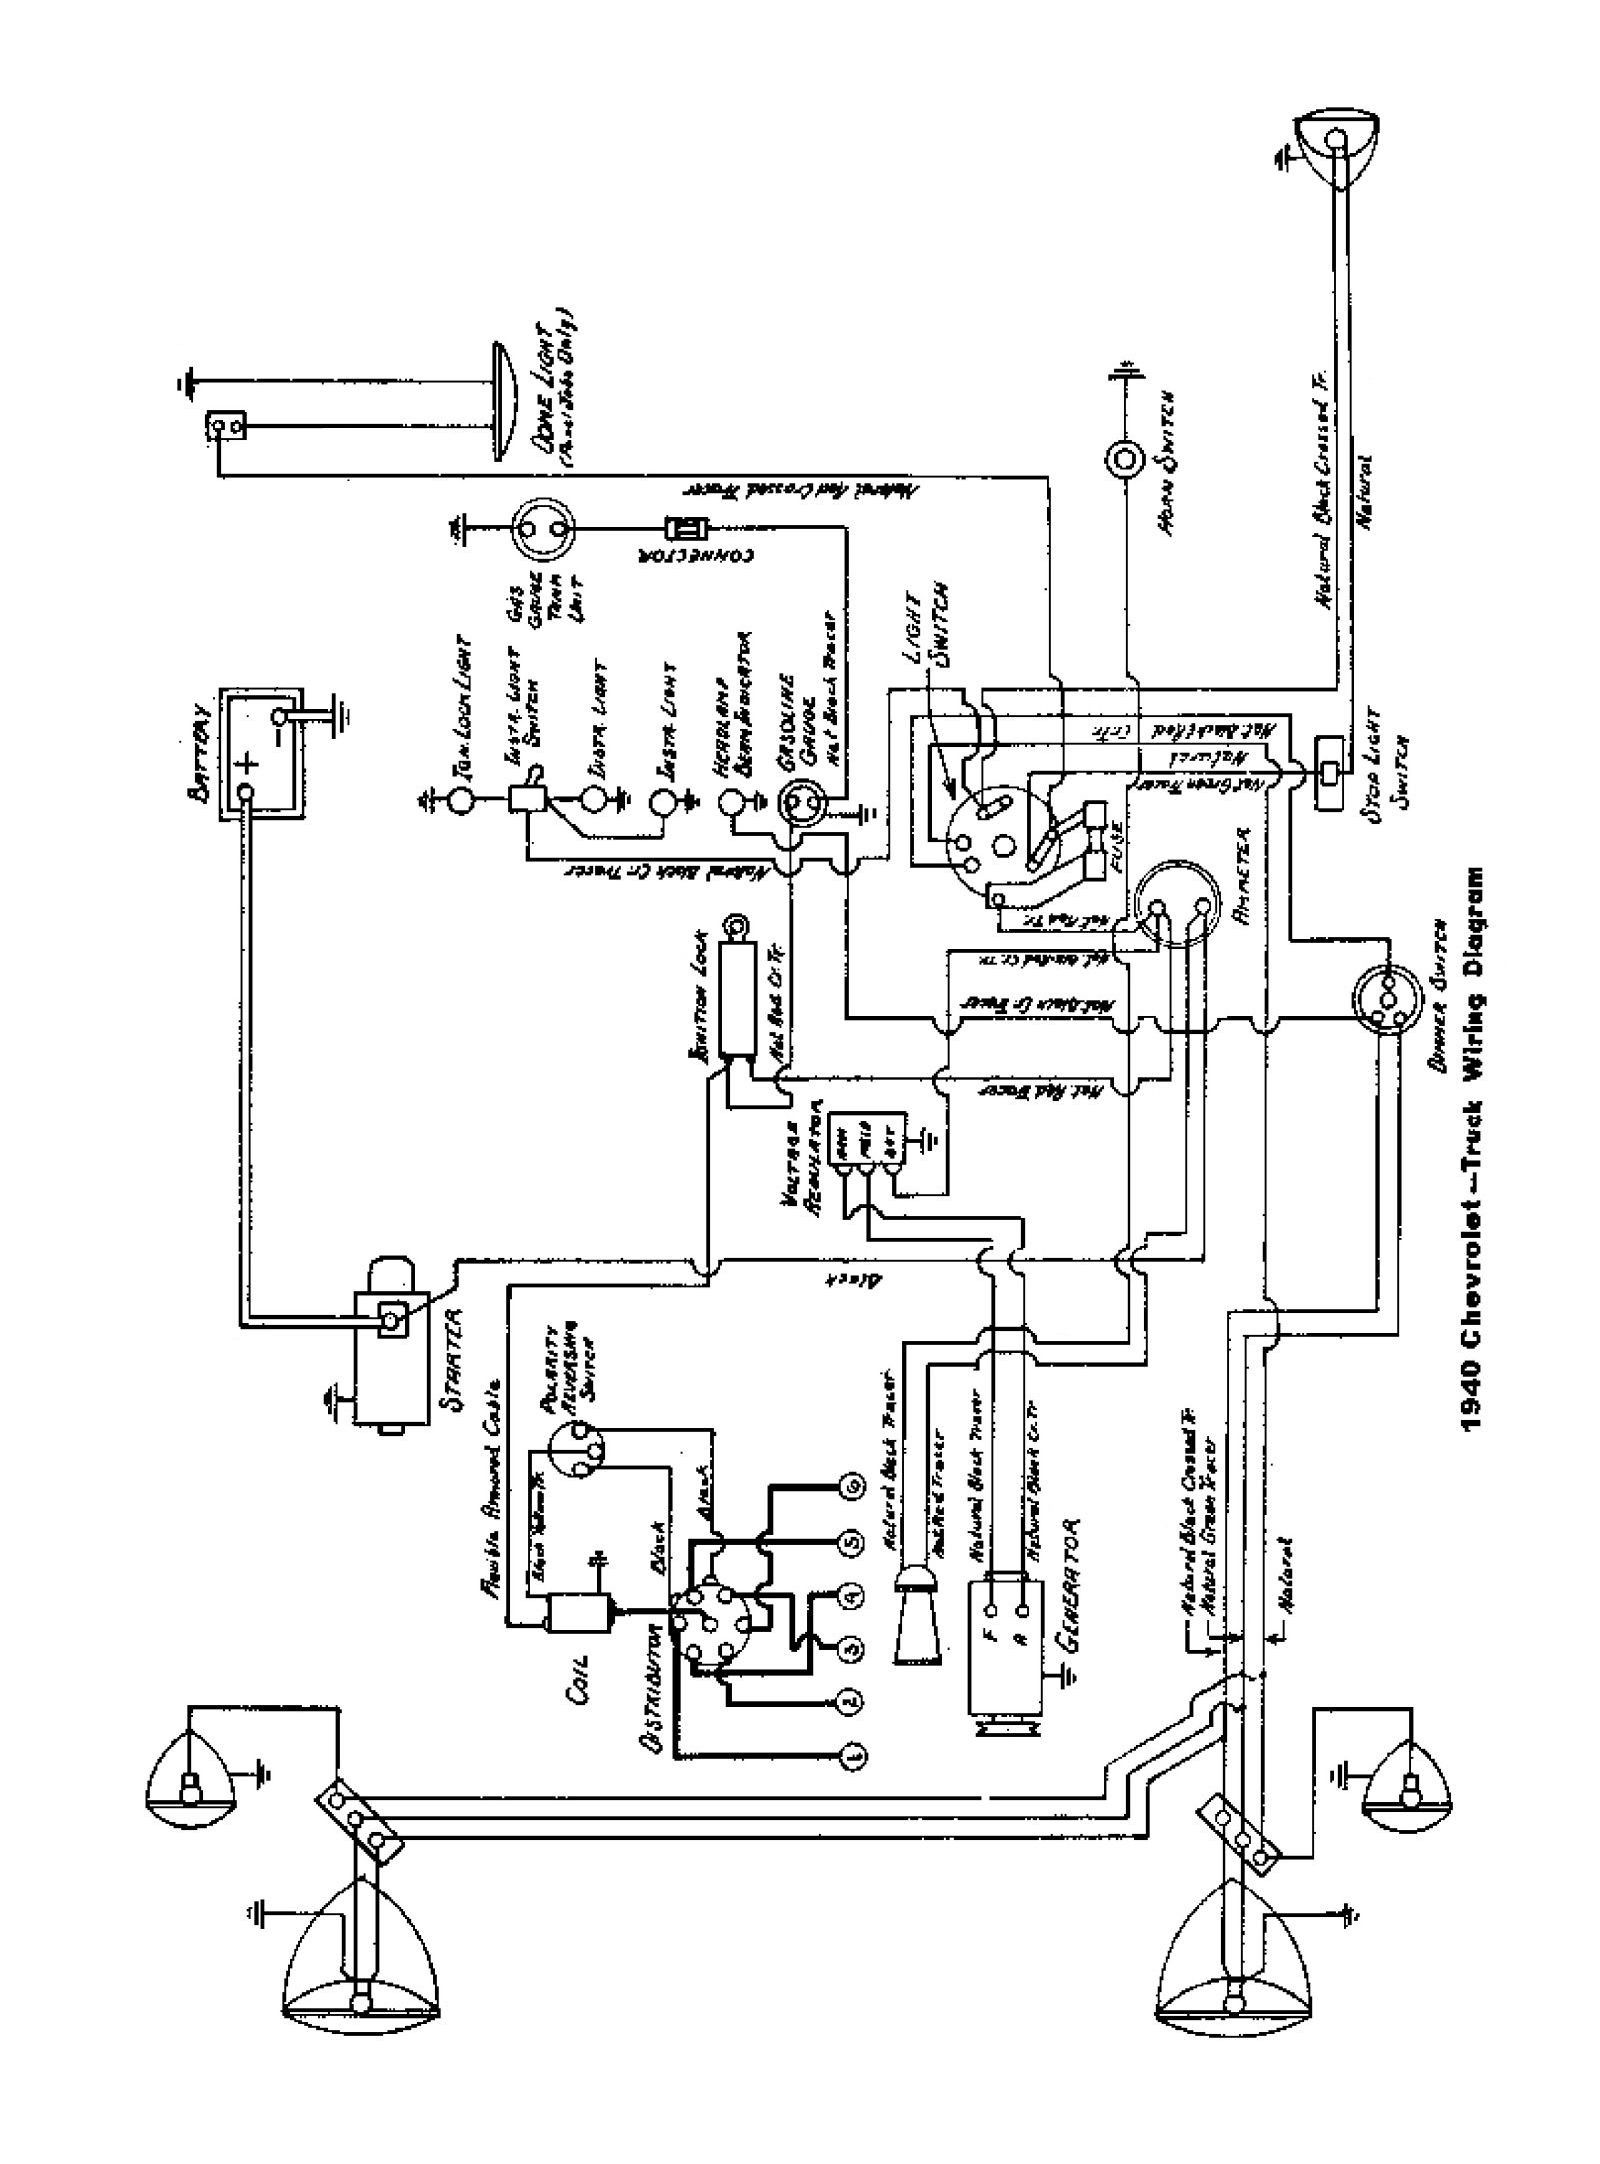 1976 Chevy Truck Wiring Diagram In 2021 Chevy Trucks Electrical Diagram 1949 Chevy Truck